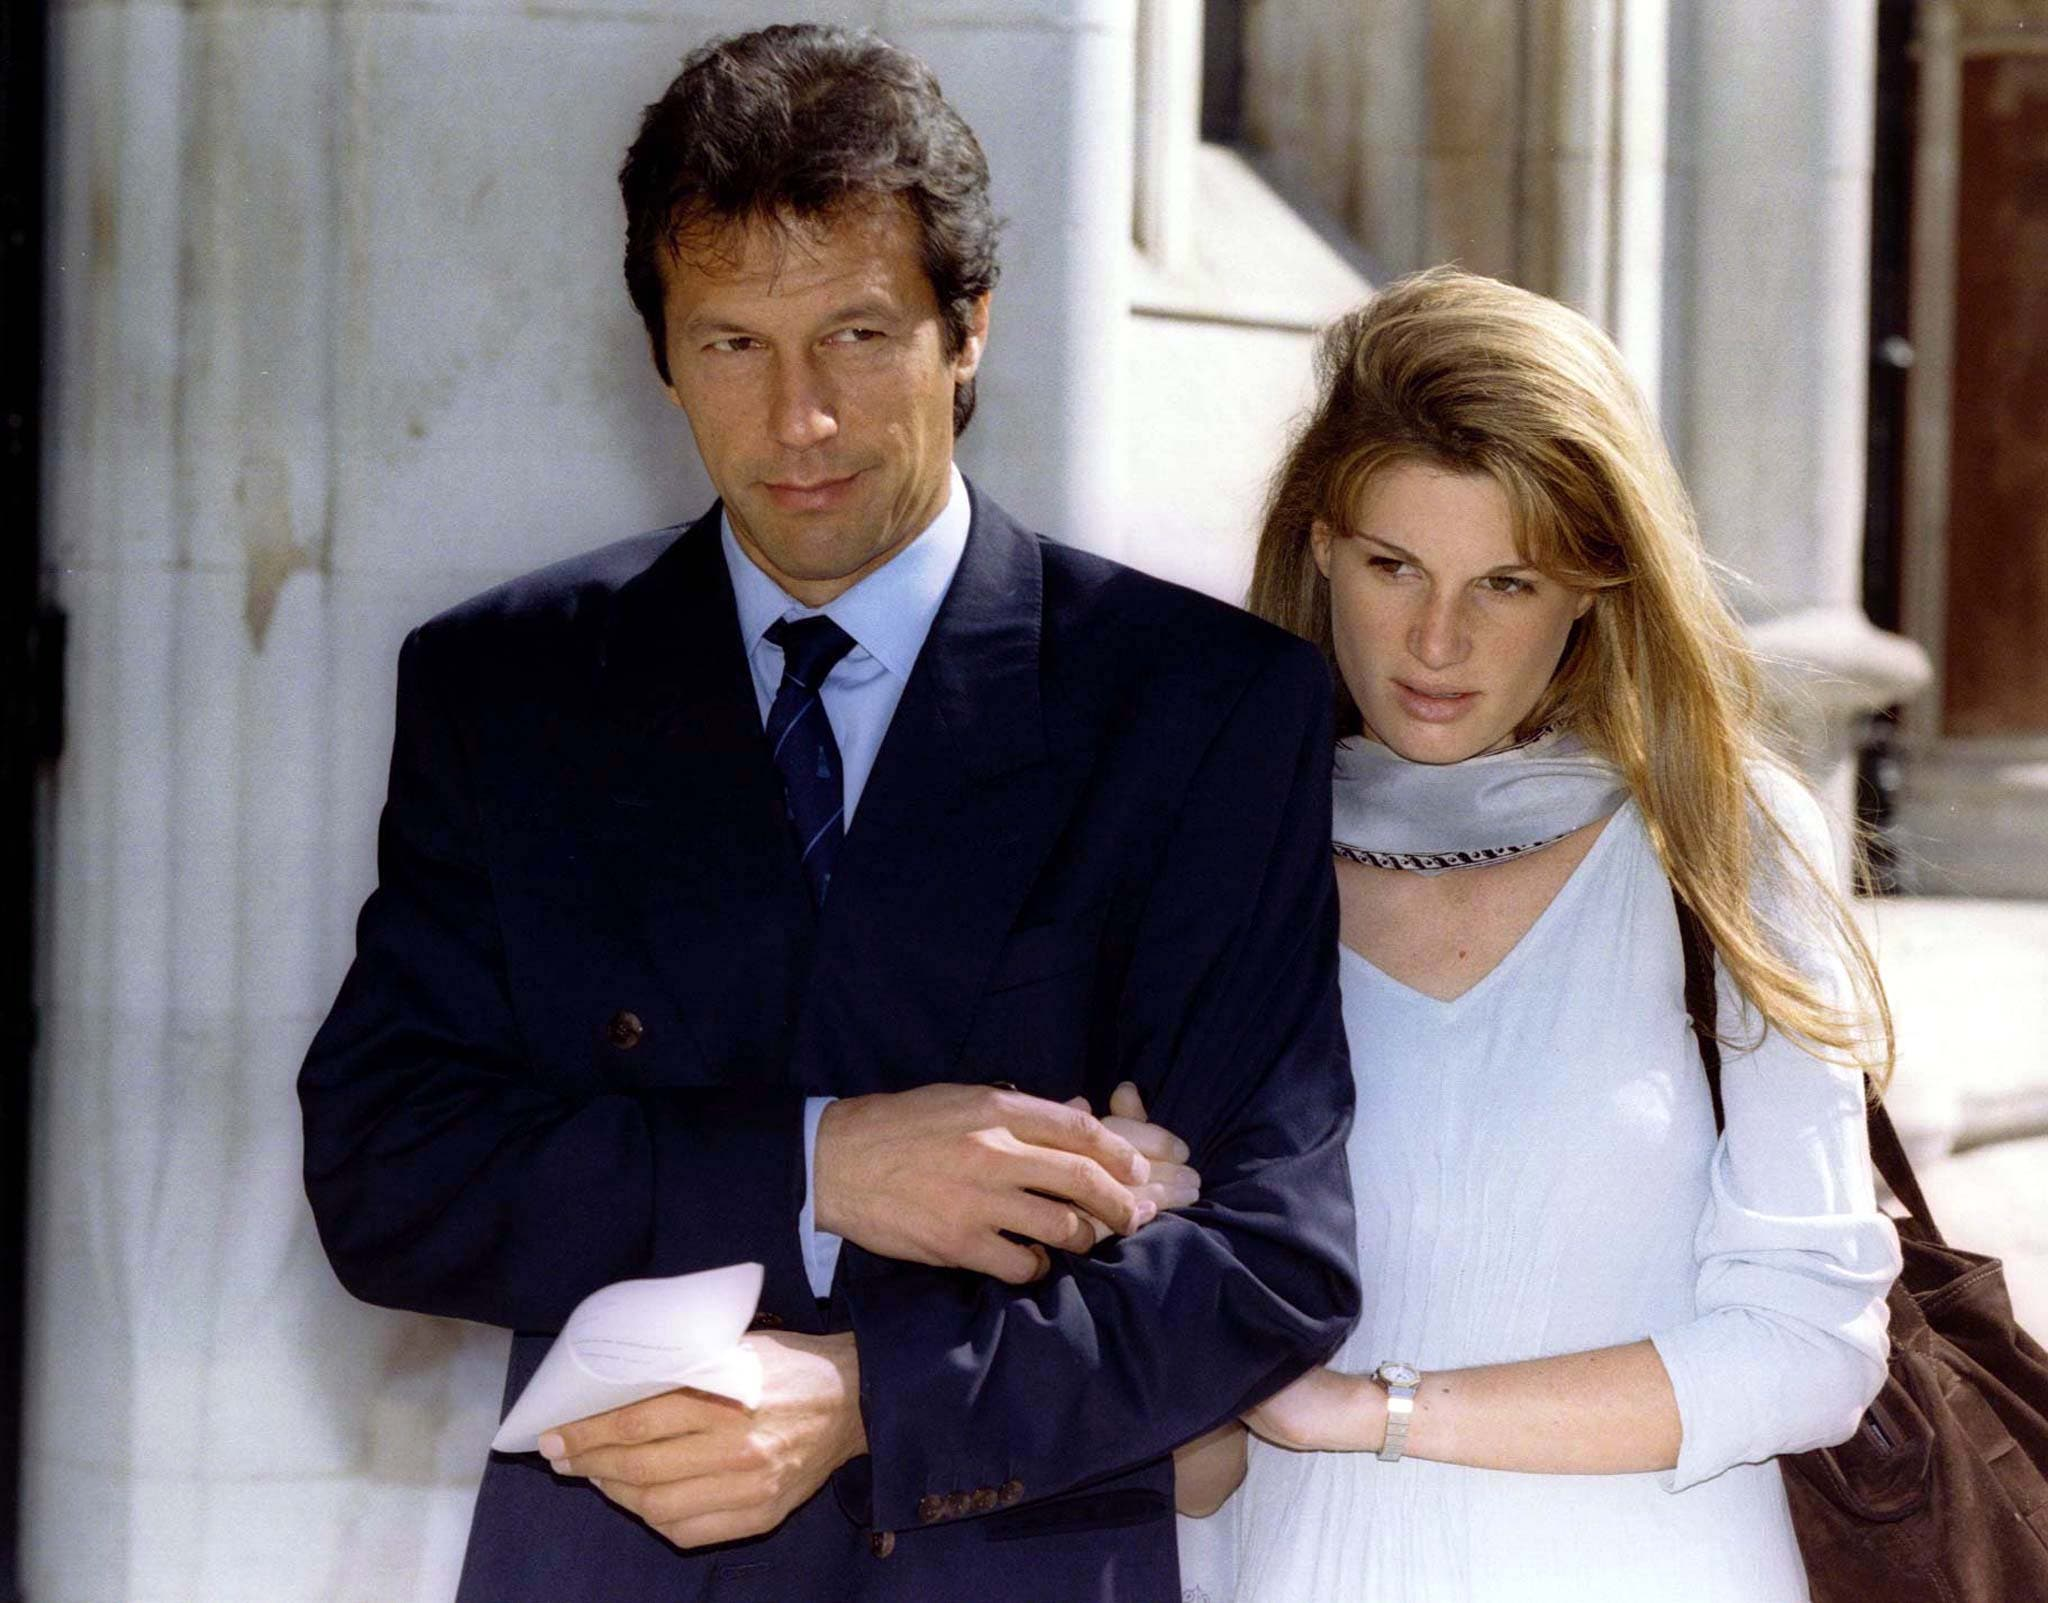 Imran Khan with Jemima at the London's High Court on July 26 1996. (Reuters)